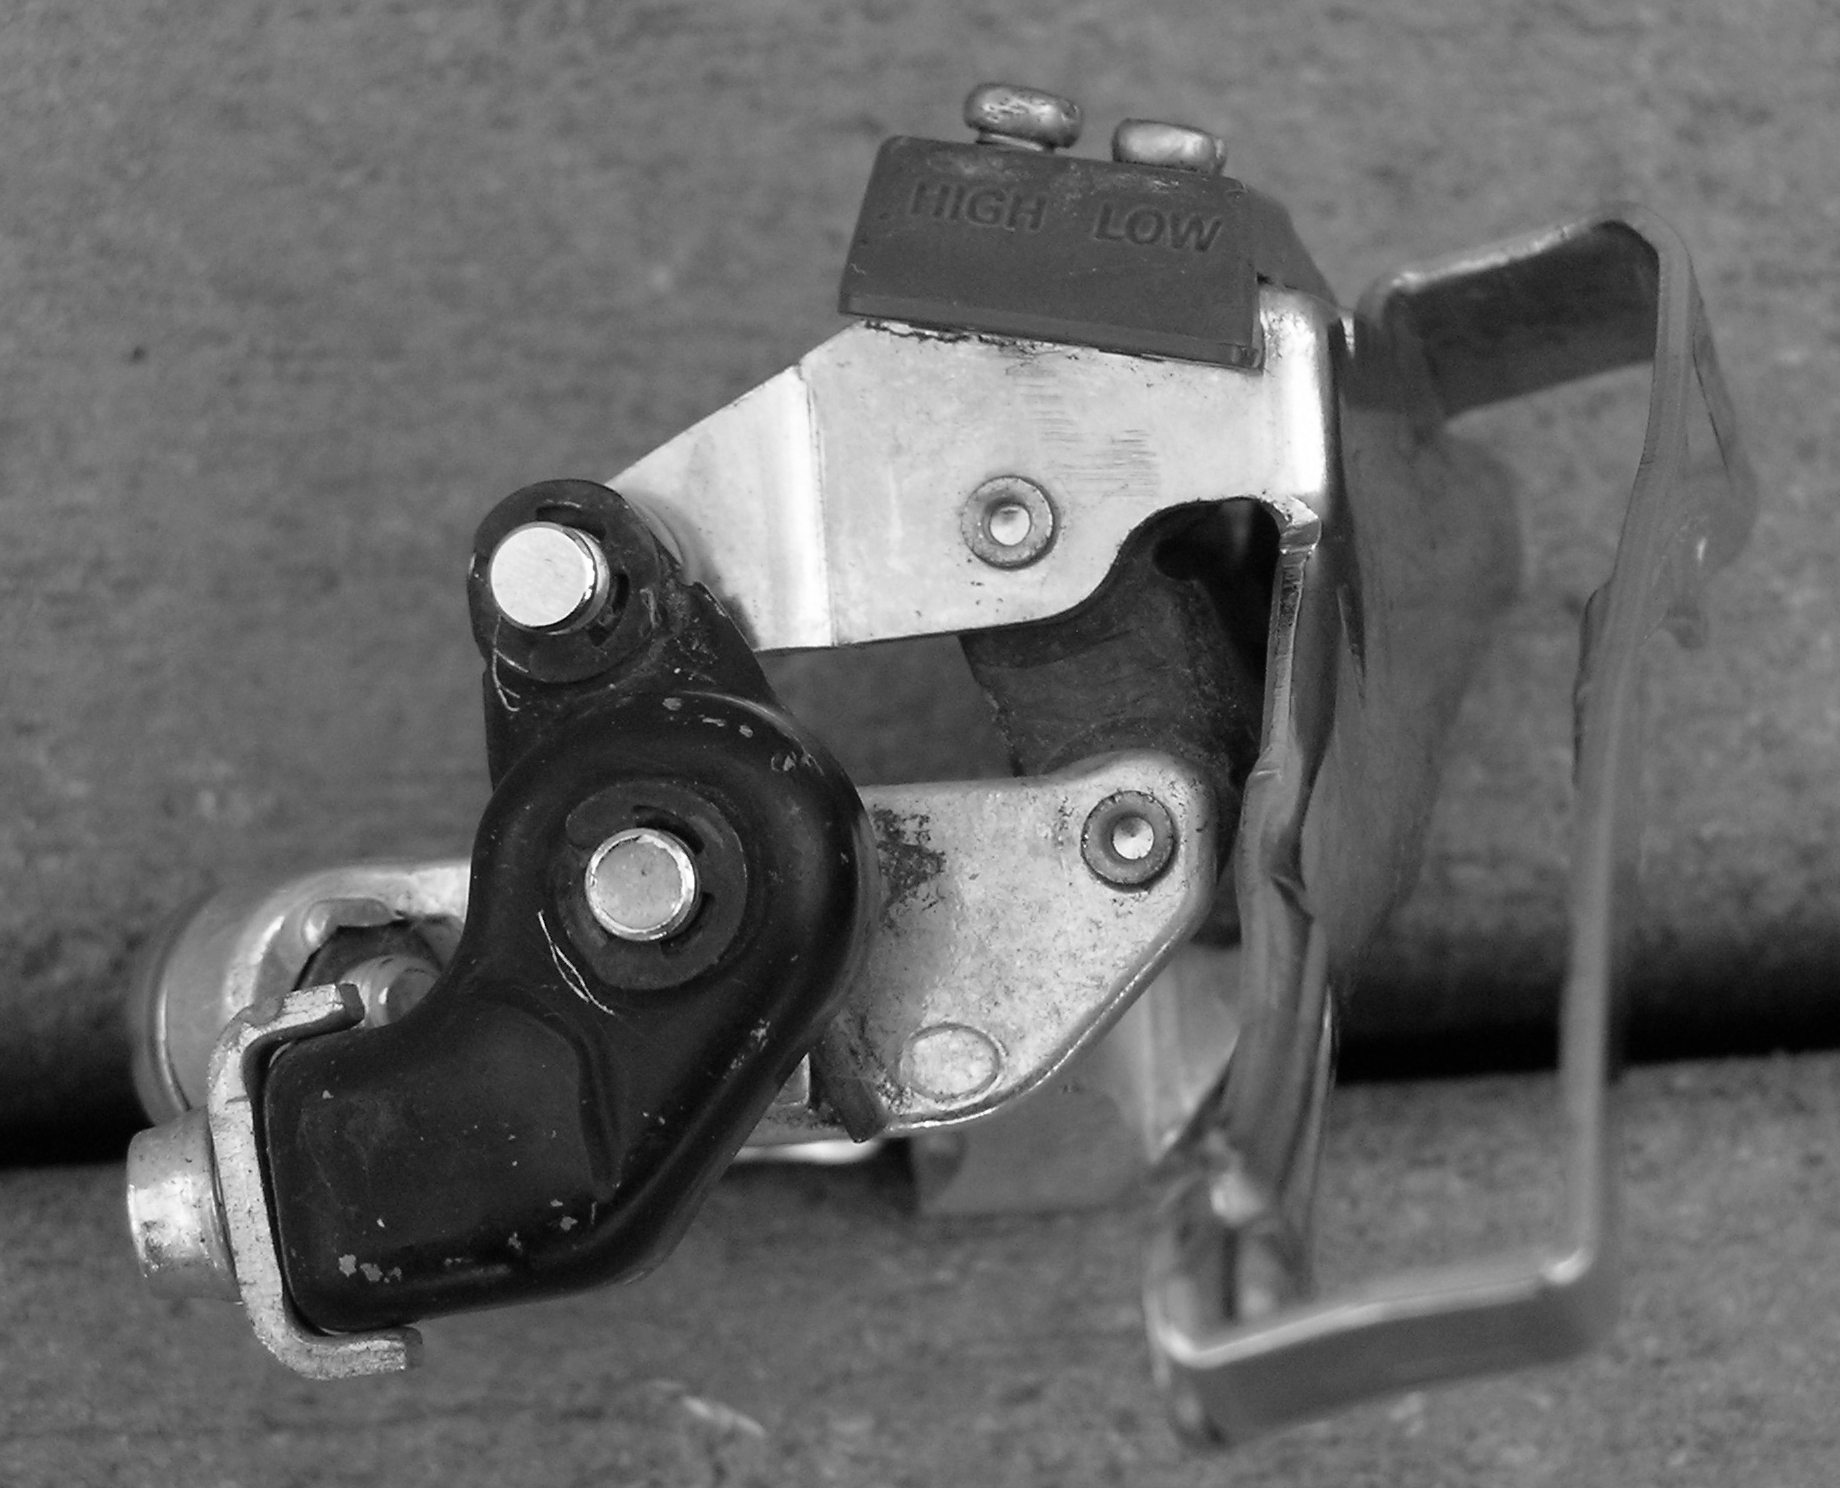 Figure 2: View of a front derailleur from behind. The cage is to the right, the clamp is to the left, and the parallelogram linkage system is in the middle. The lever arm is colored black. The adjustm  ent screws are up top.